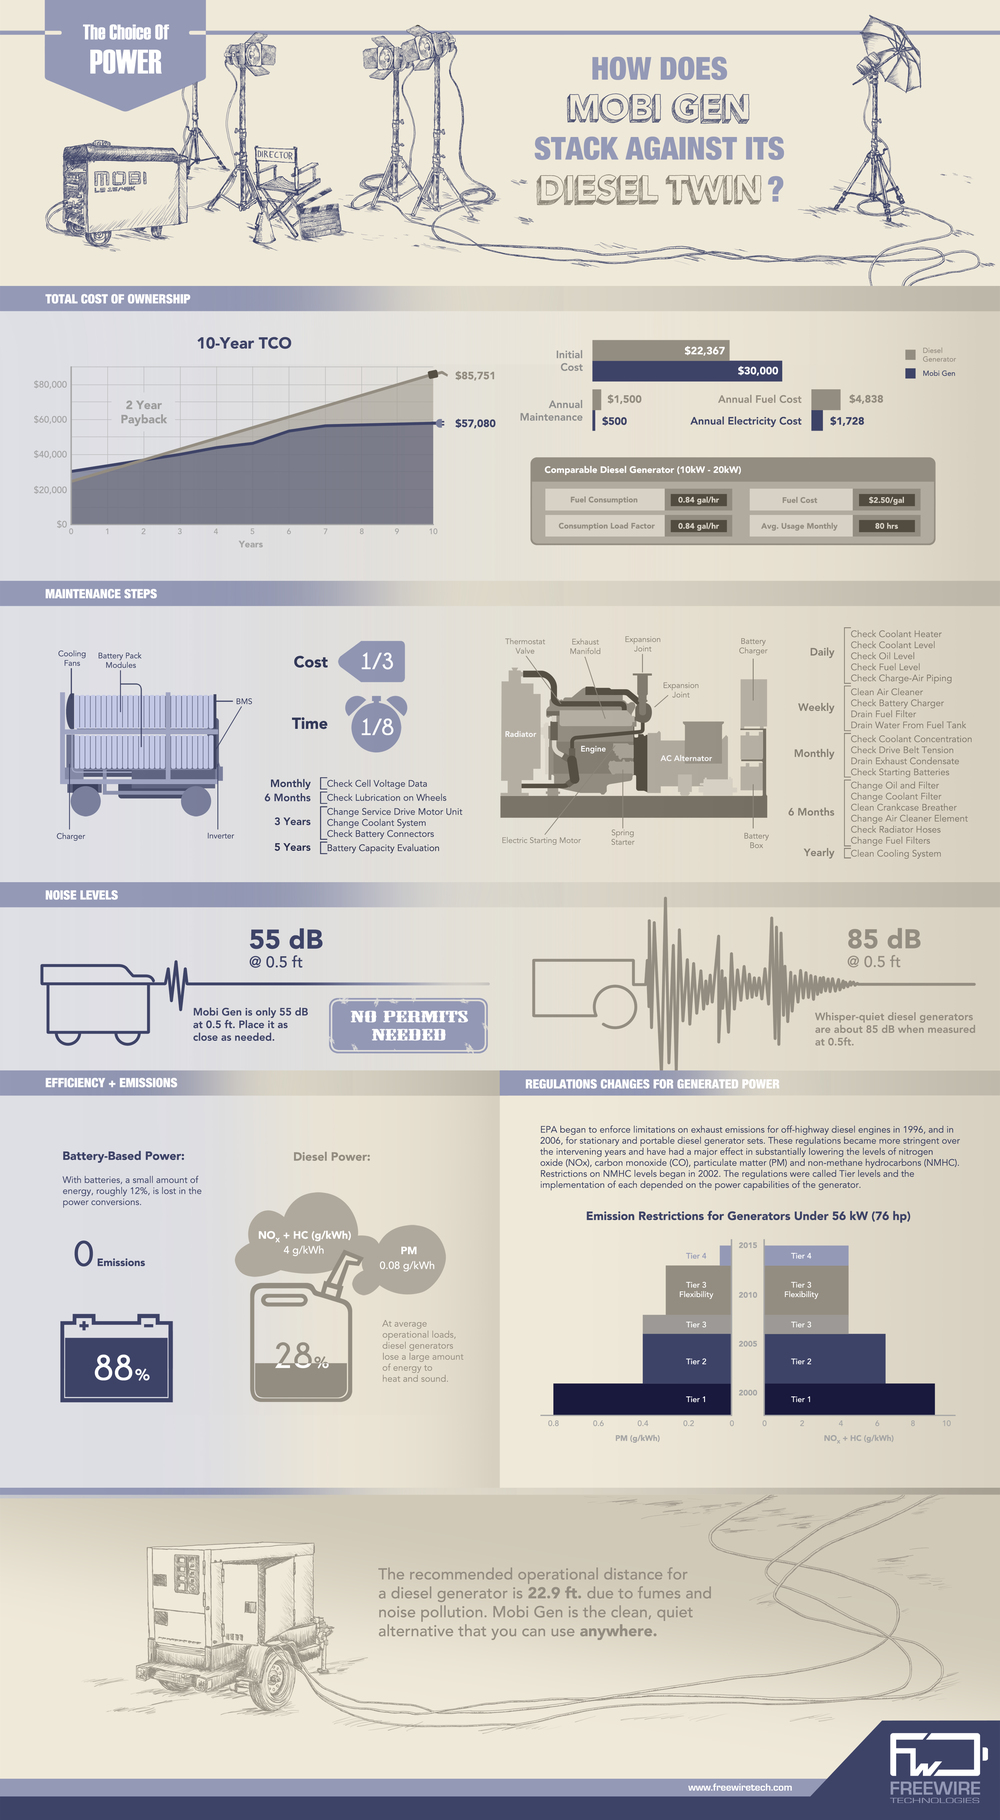 Helpful infographic that compares the performance of a mobile power system like Mobi Gen to diesel generators